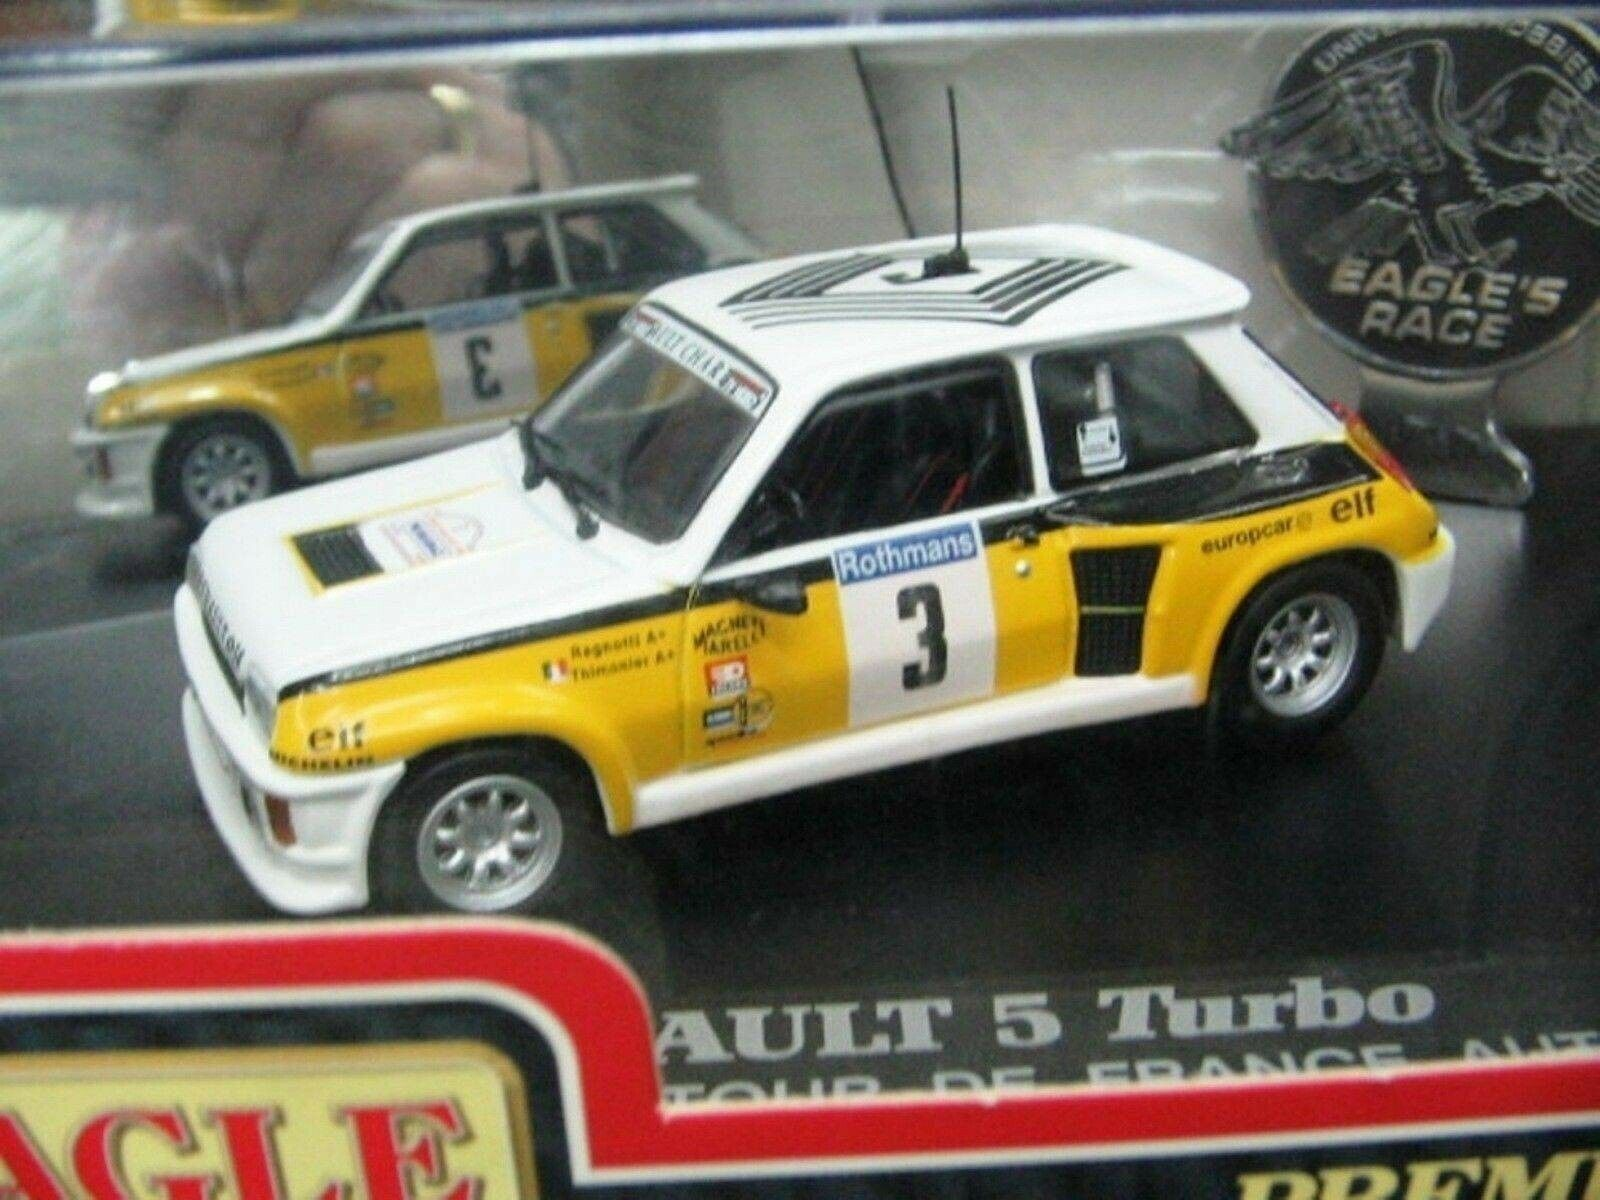 WOW EXTREMELY RARE Renault 5 Turbo WRC Ragnotti Td France 1984 1 43 UH-Spark